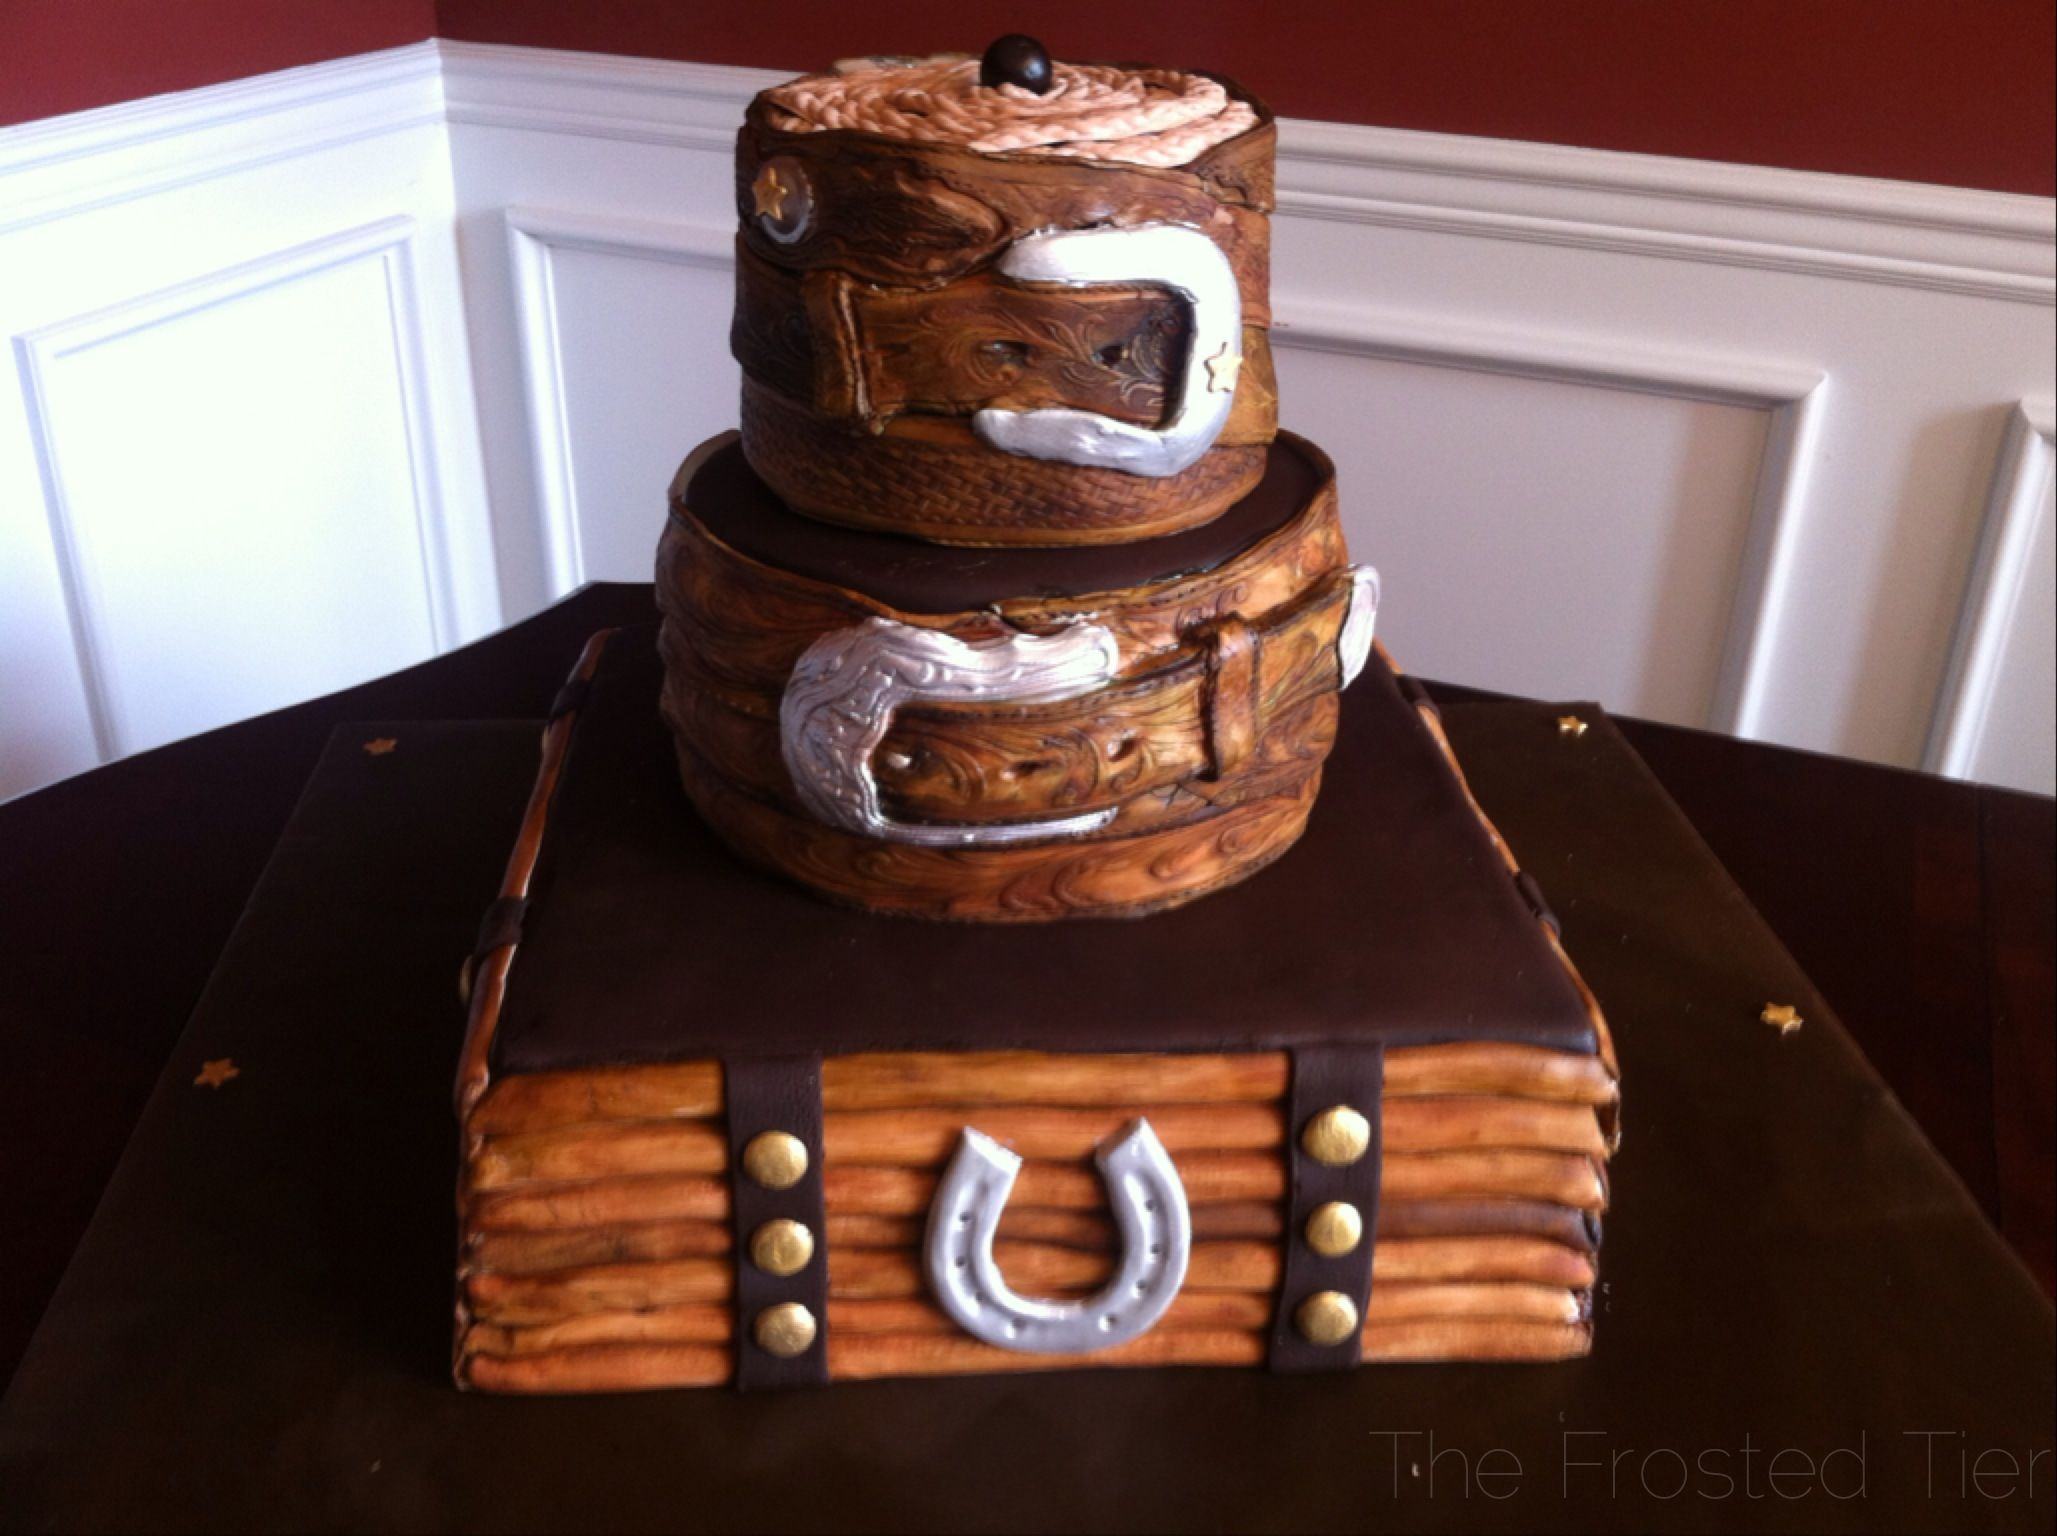 Birthday Cakes Nashville Tn ~ Western belt buckle cake by the frosted tier in nashville tn